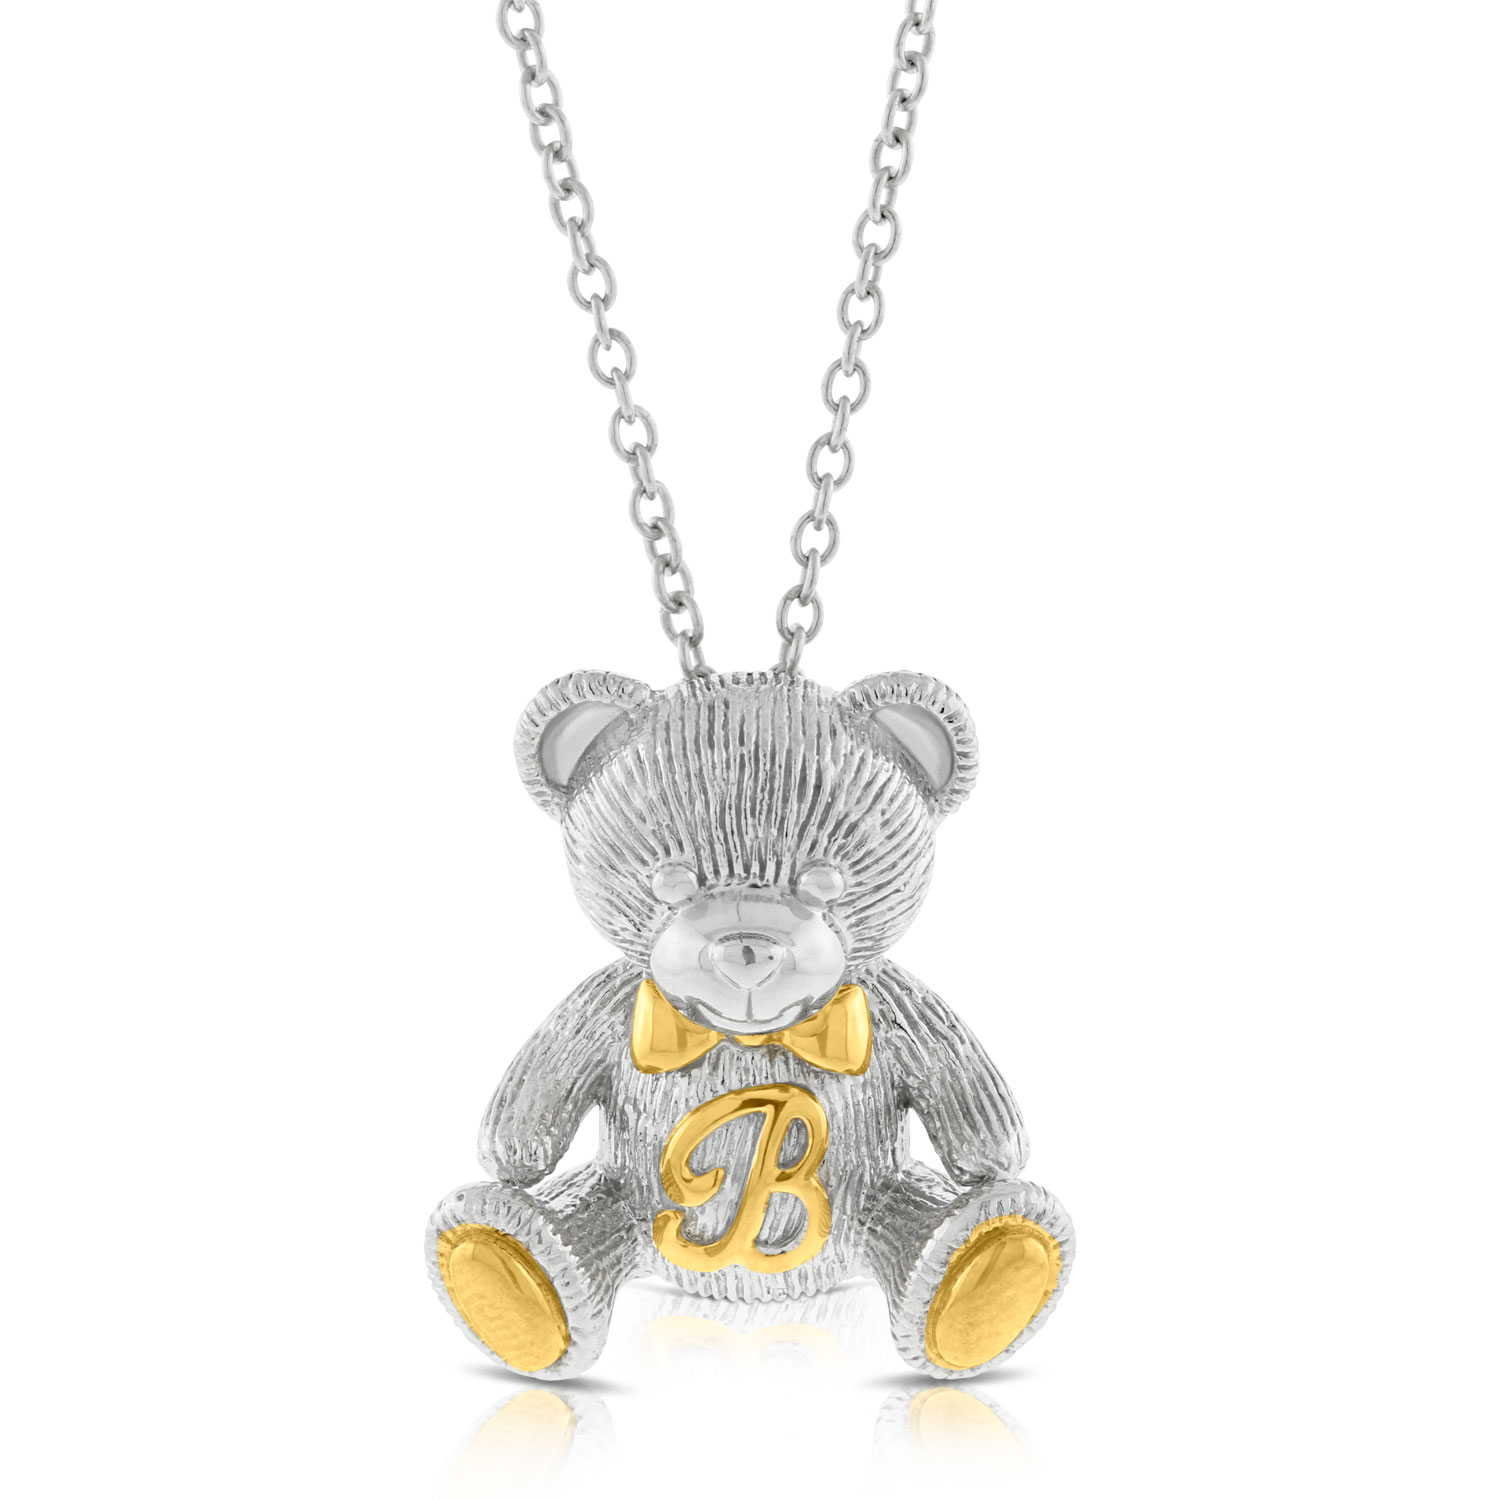 dp girls jewelry for gift necklace girlfriend bear crystals granddaughter pendant princess daughter sllaiss women amazon swarovski com teddy